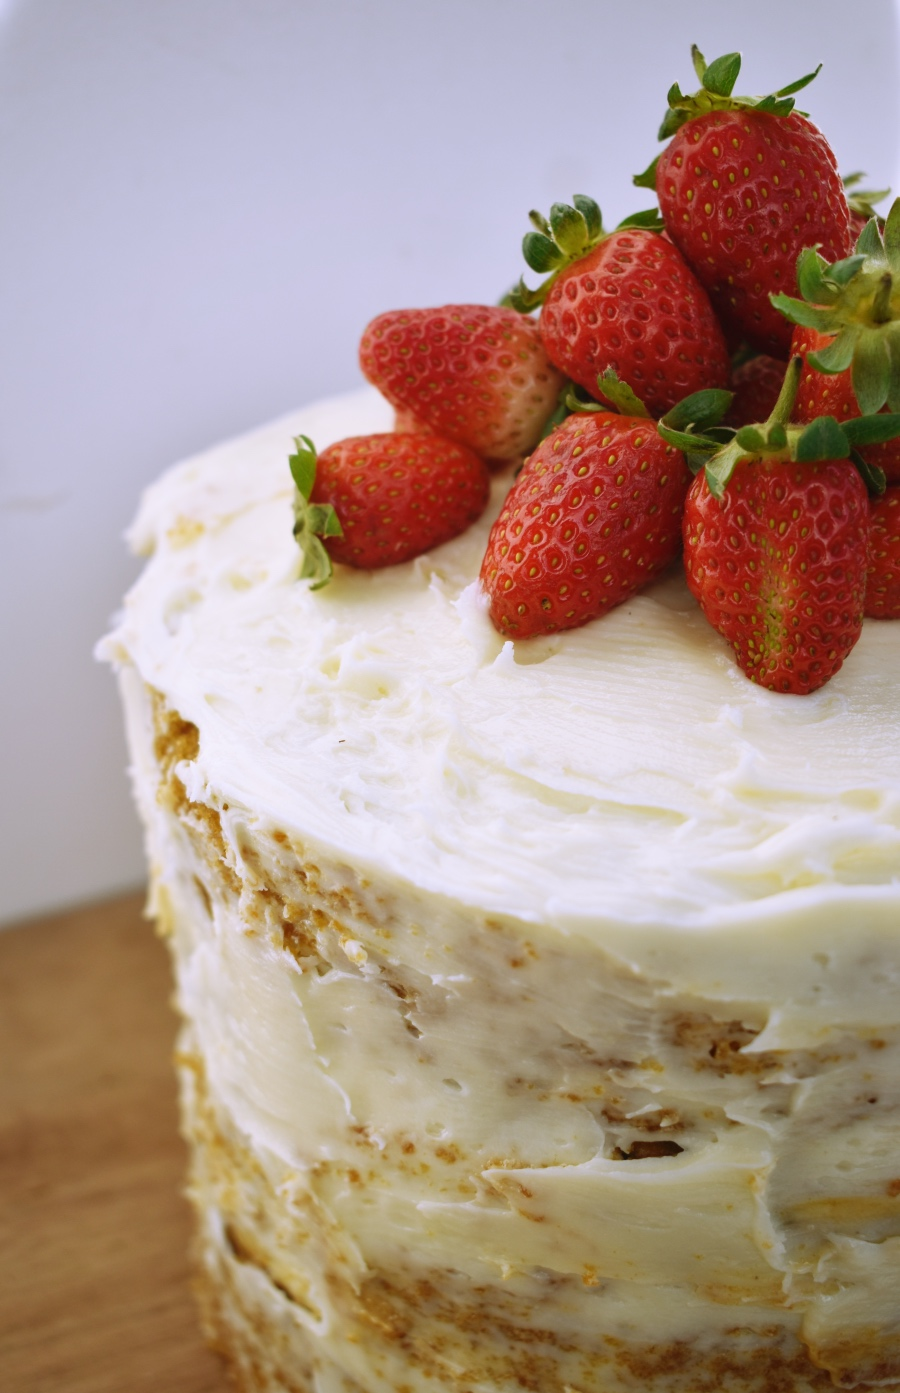 woolies cake hack - naked cake with strawberries